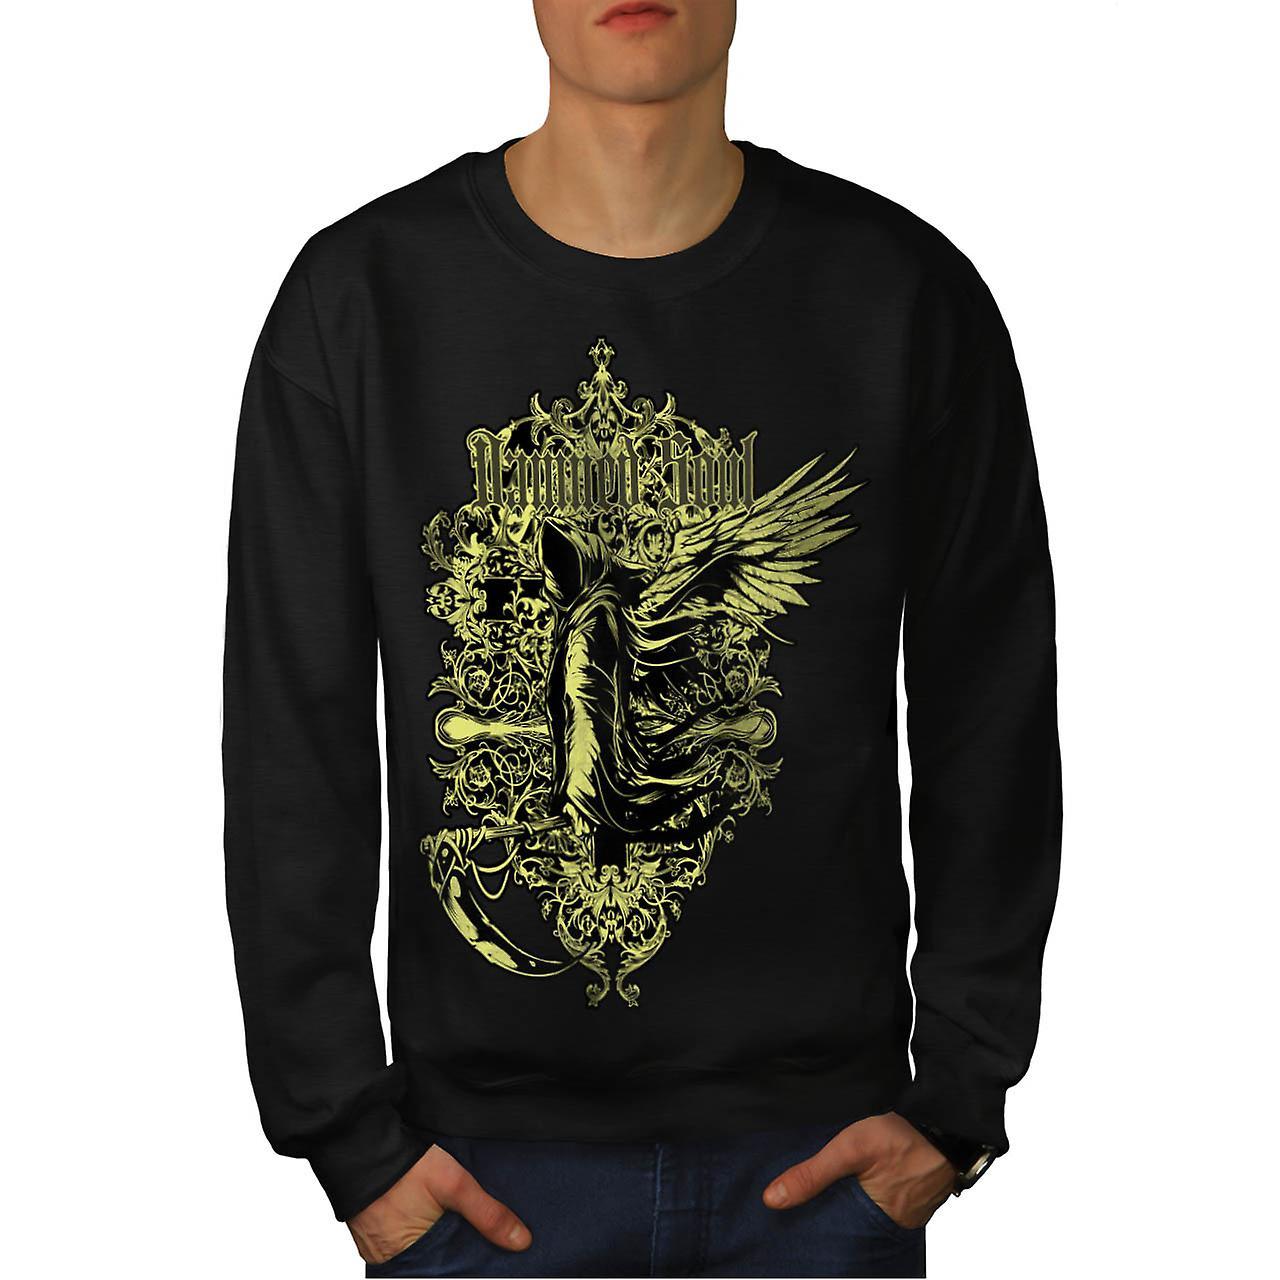 Damned Soul Death Axe Hell Angel Men Black Sweatshirt | Wellcoda